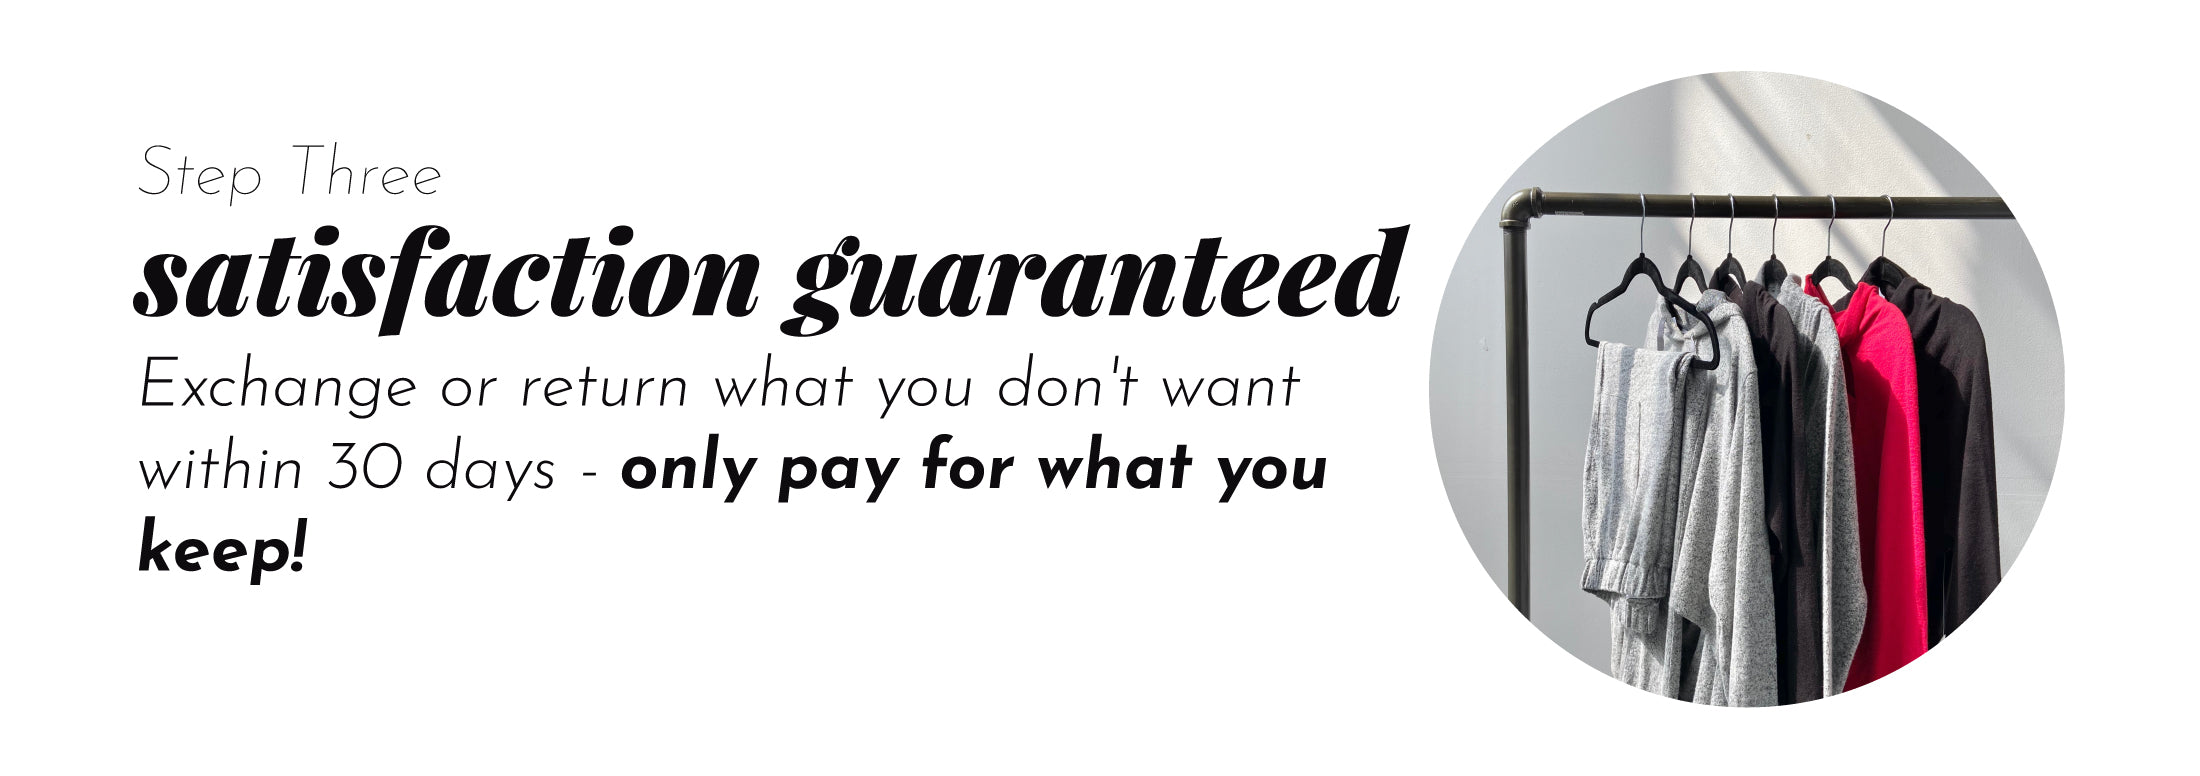 Exchange or return what you don't want within 30 days - only pay for what you keep!